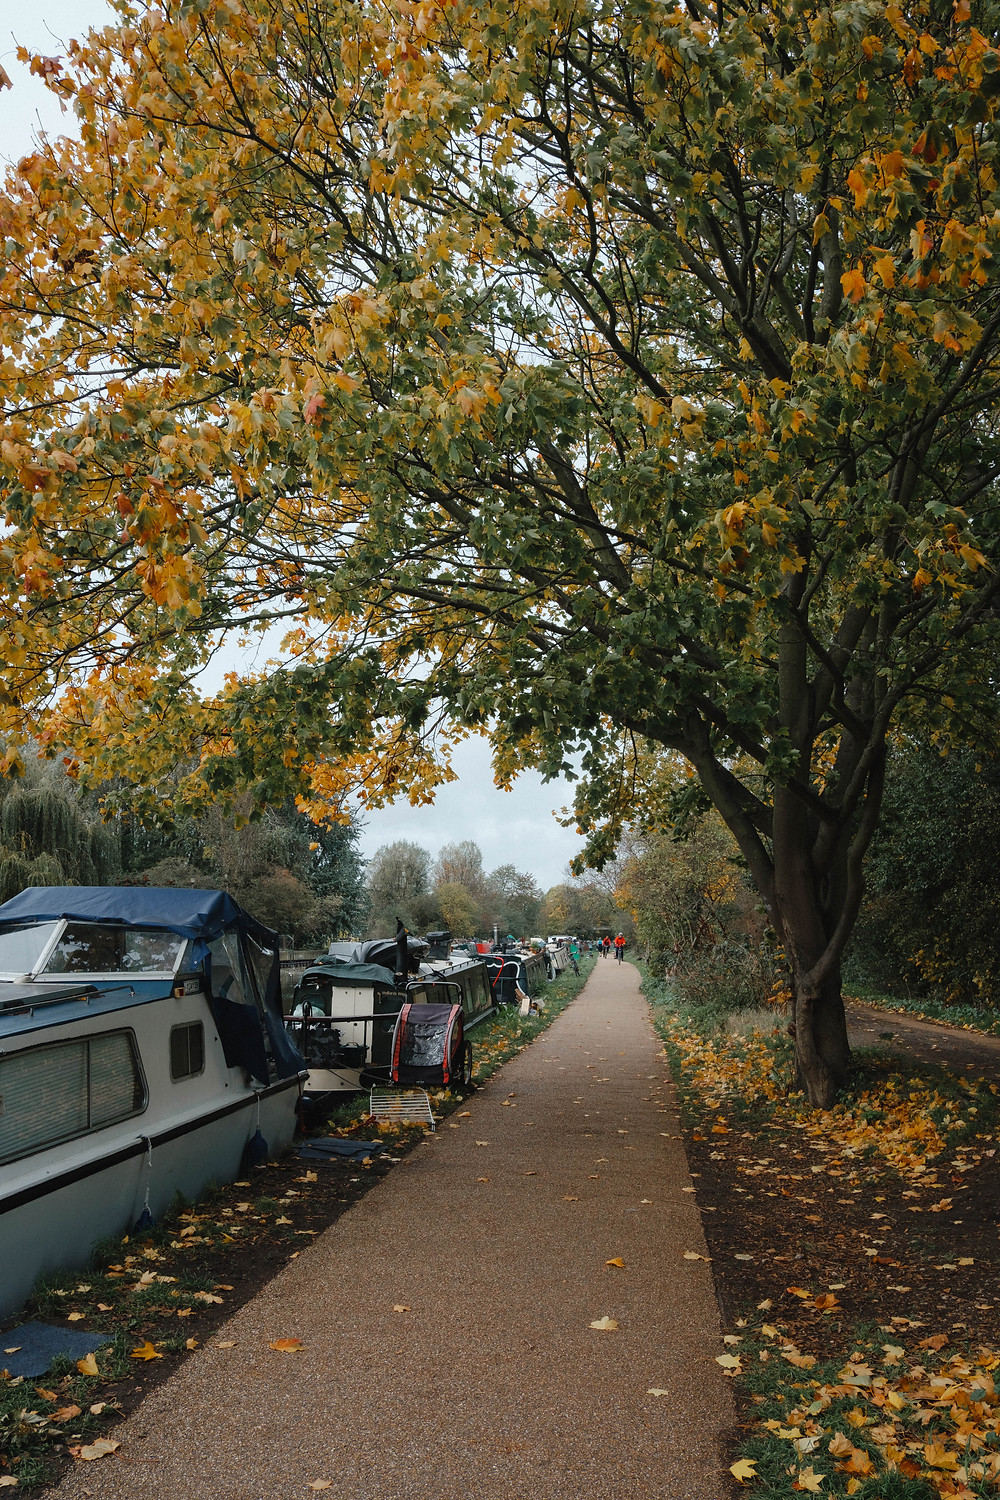 Photograph of the River Lea